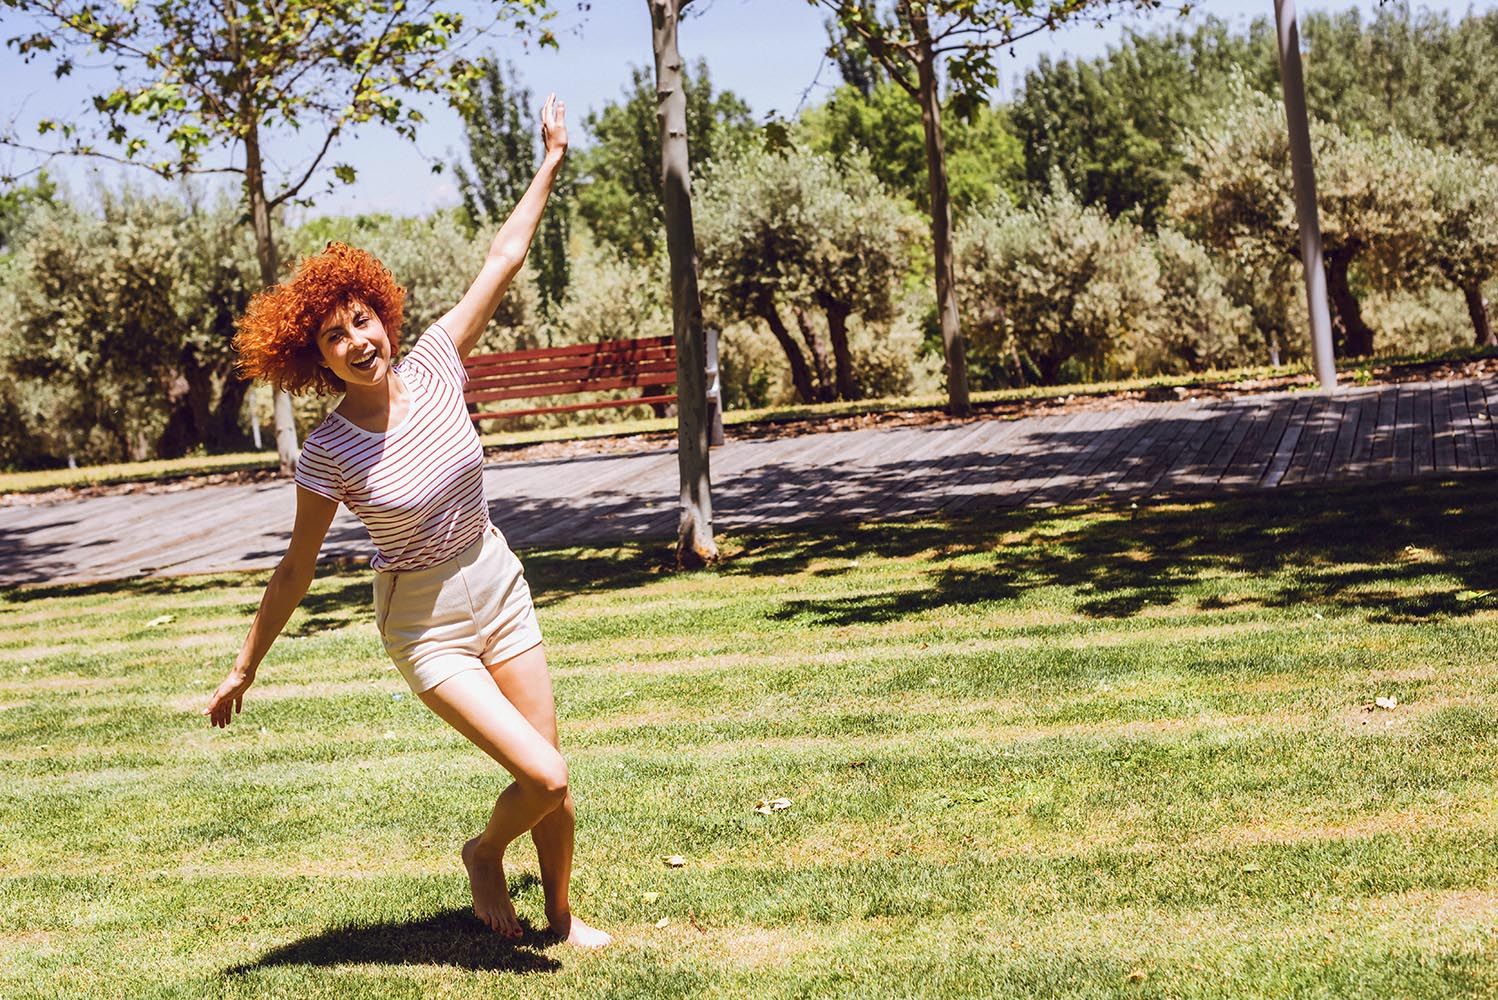 Beatiful woman doing airplane and playing in a park